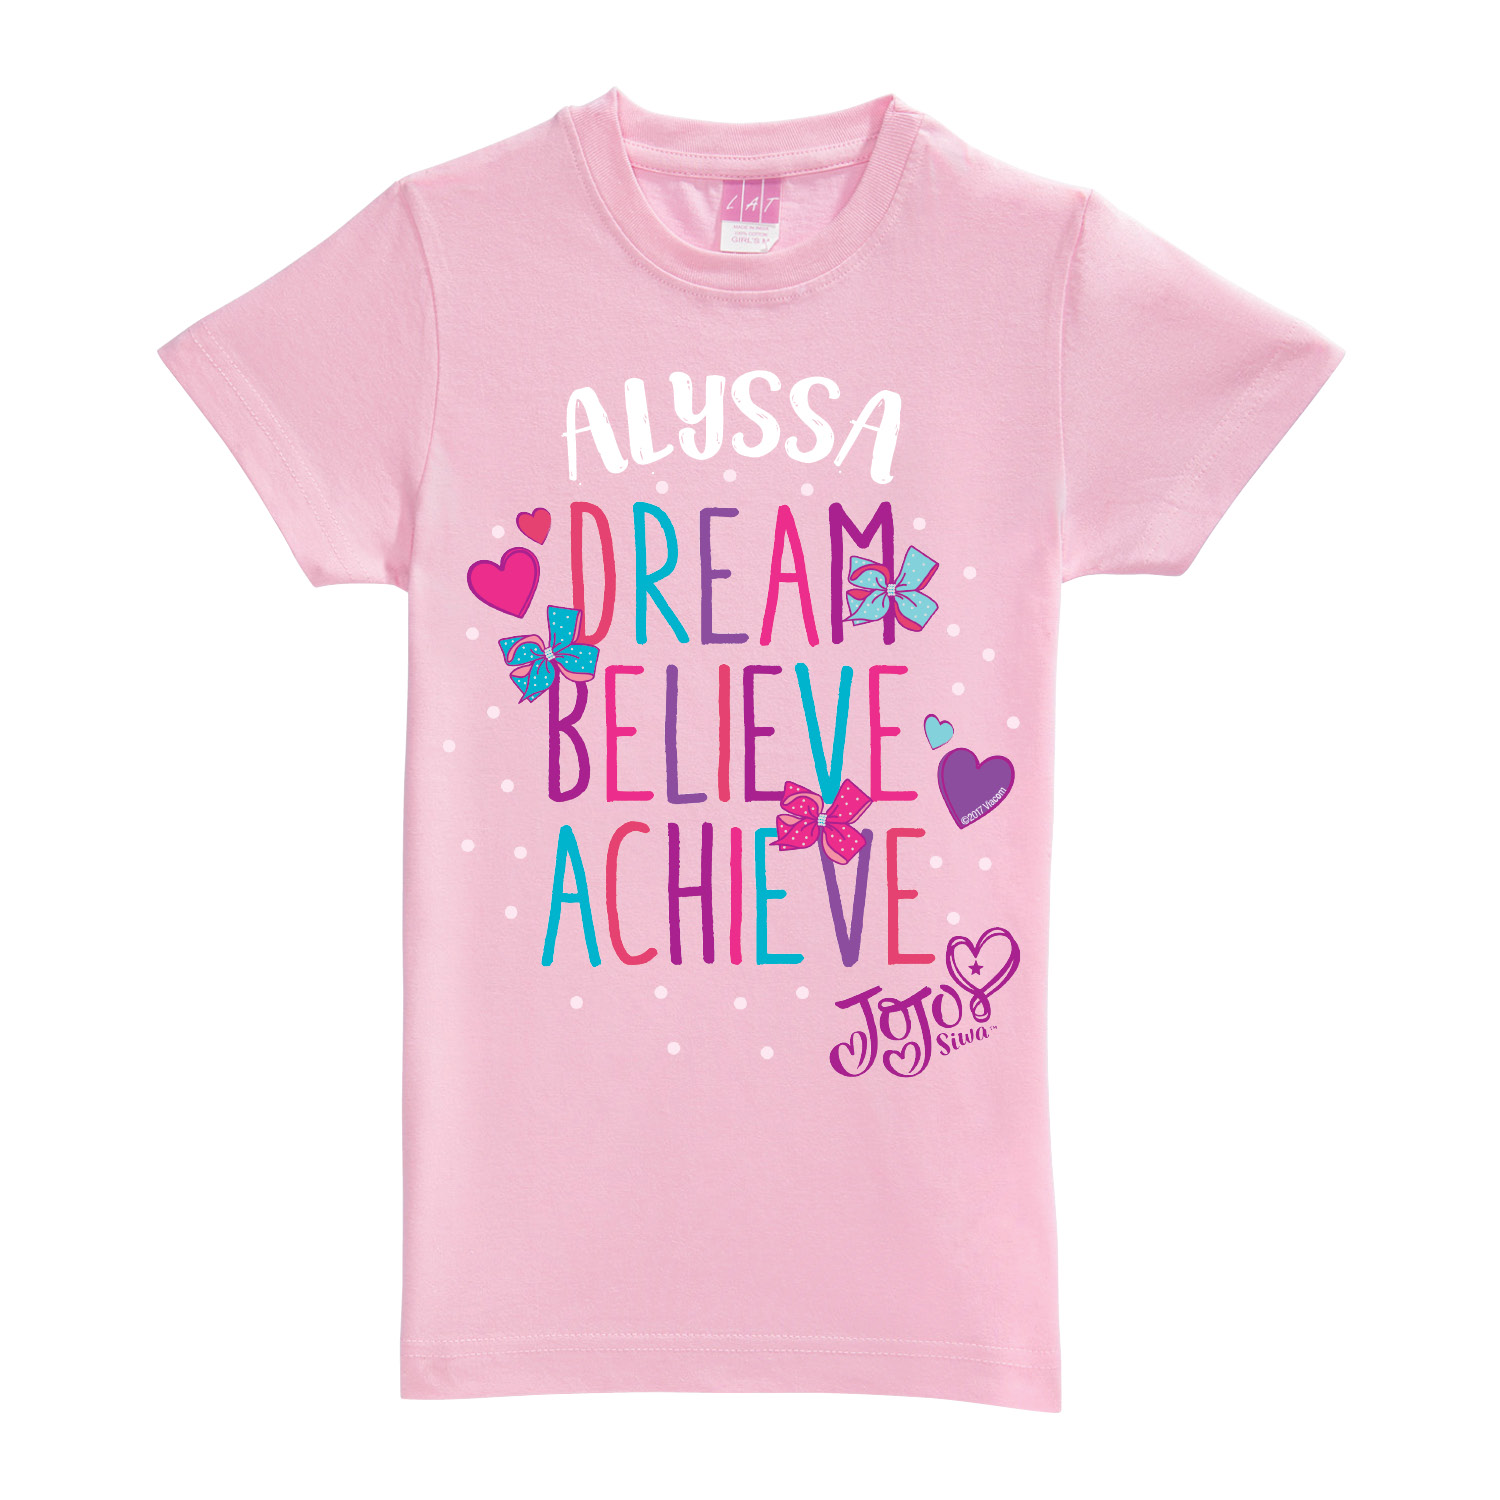 Personalized JoJo Siwa T-Shirt - Dream Believe Achieve Pink Youth Fitted Tee